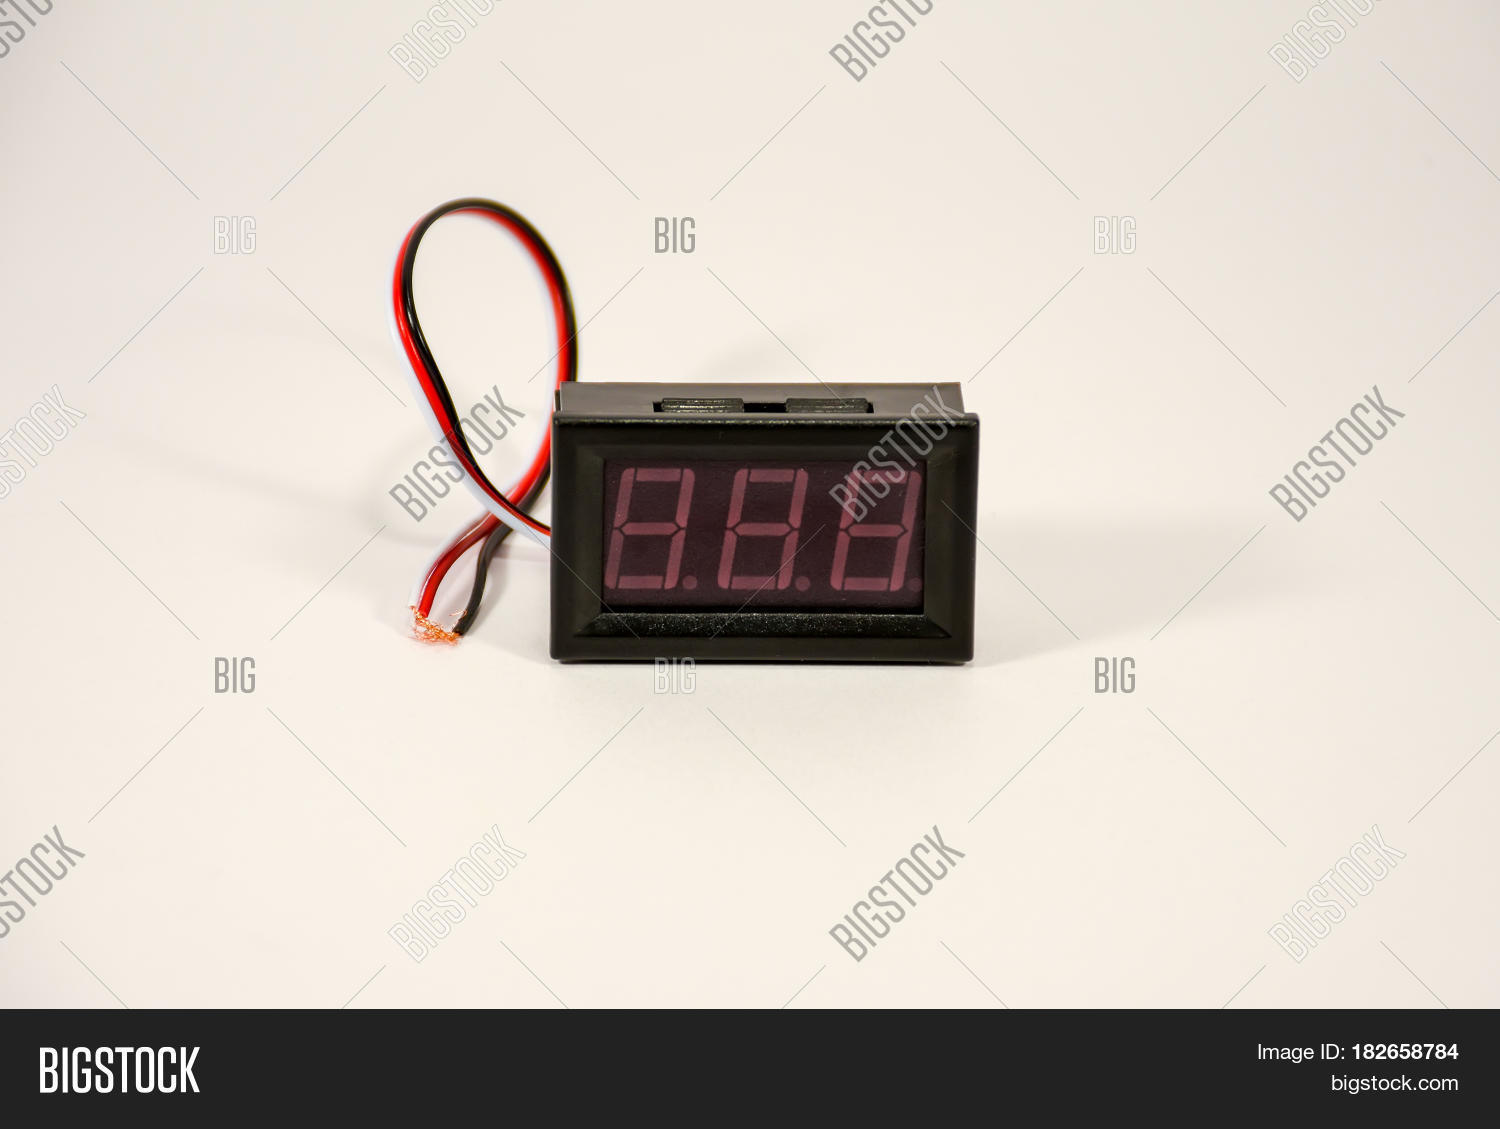 Small Digital Image Photo Free Trial Bigstock Wiring Voltmeter And Amp Meter A Indicator Is Ammeter With Colored Wires